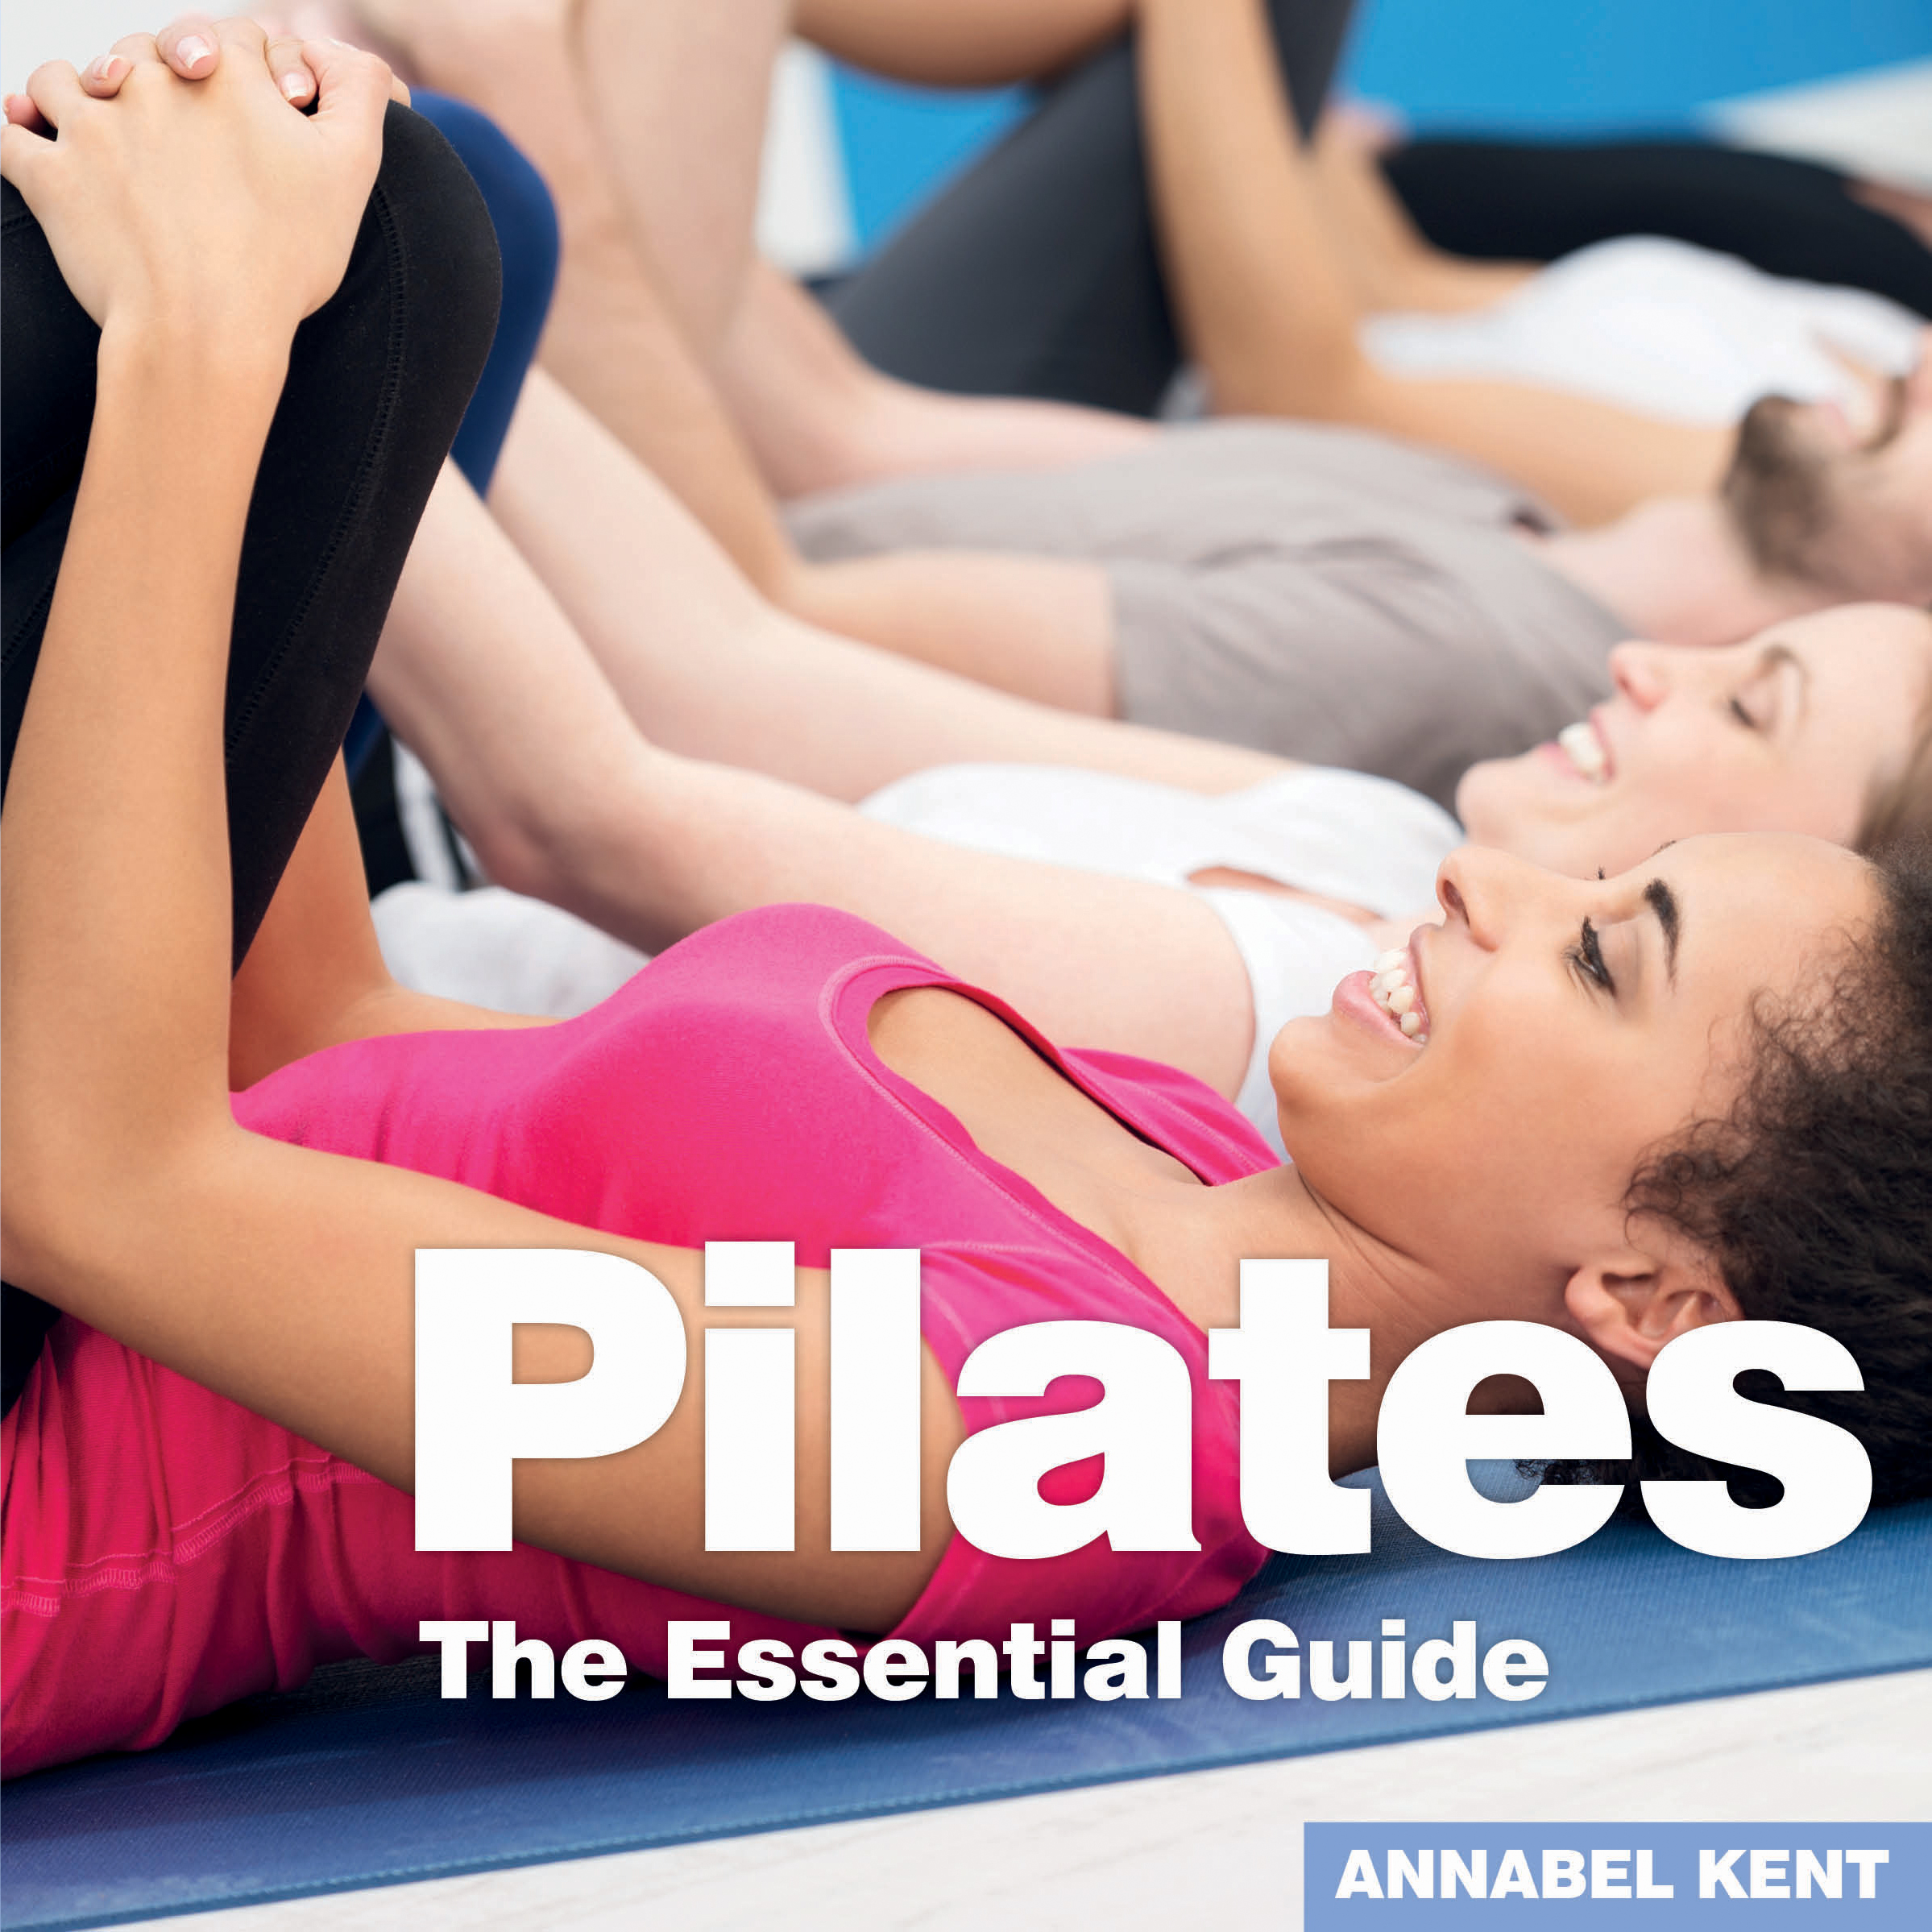 The Essential Guide To Pilates